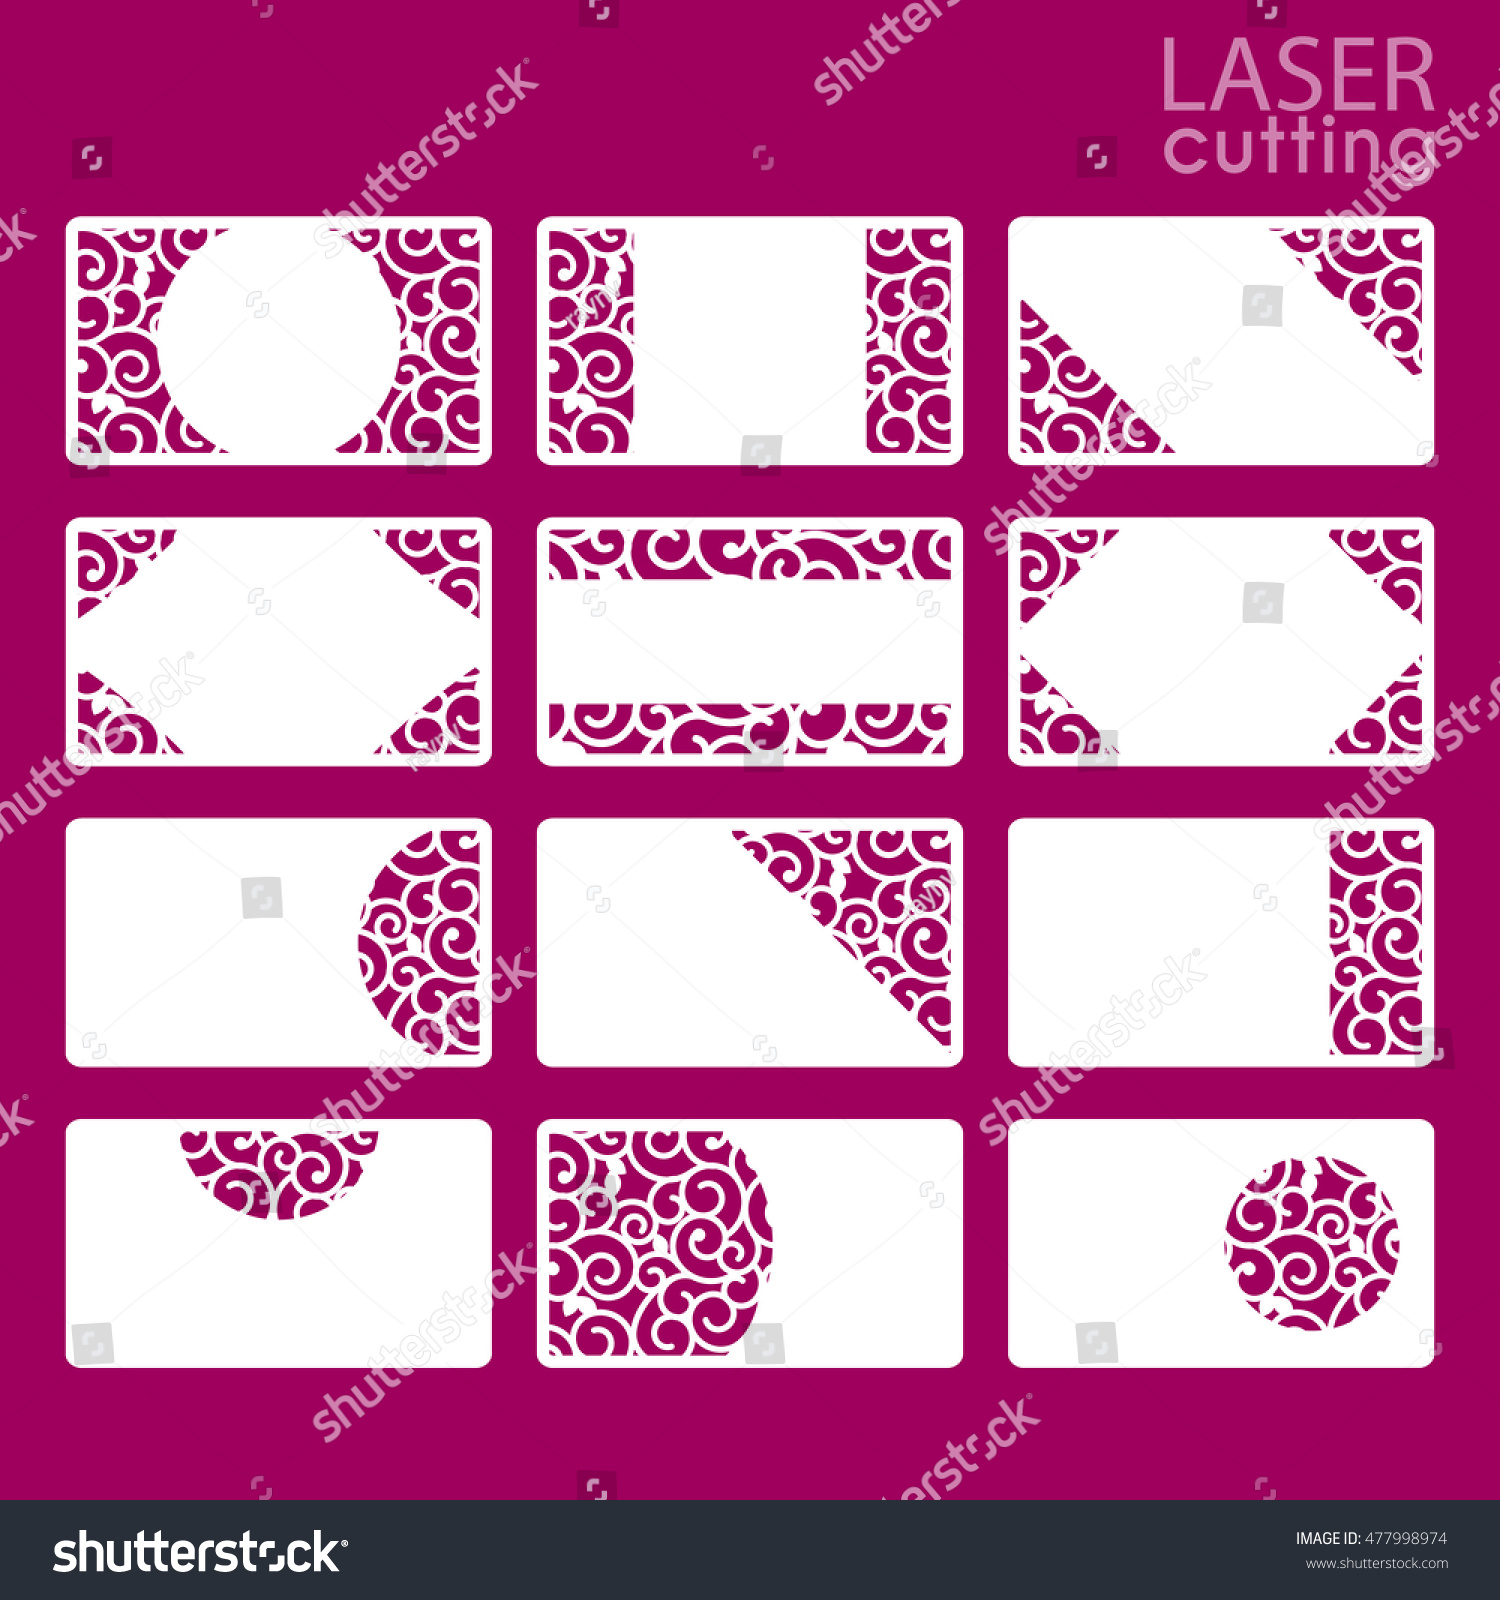 Business Card Collection Template Cut Out Stock Vector Royalty Free